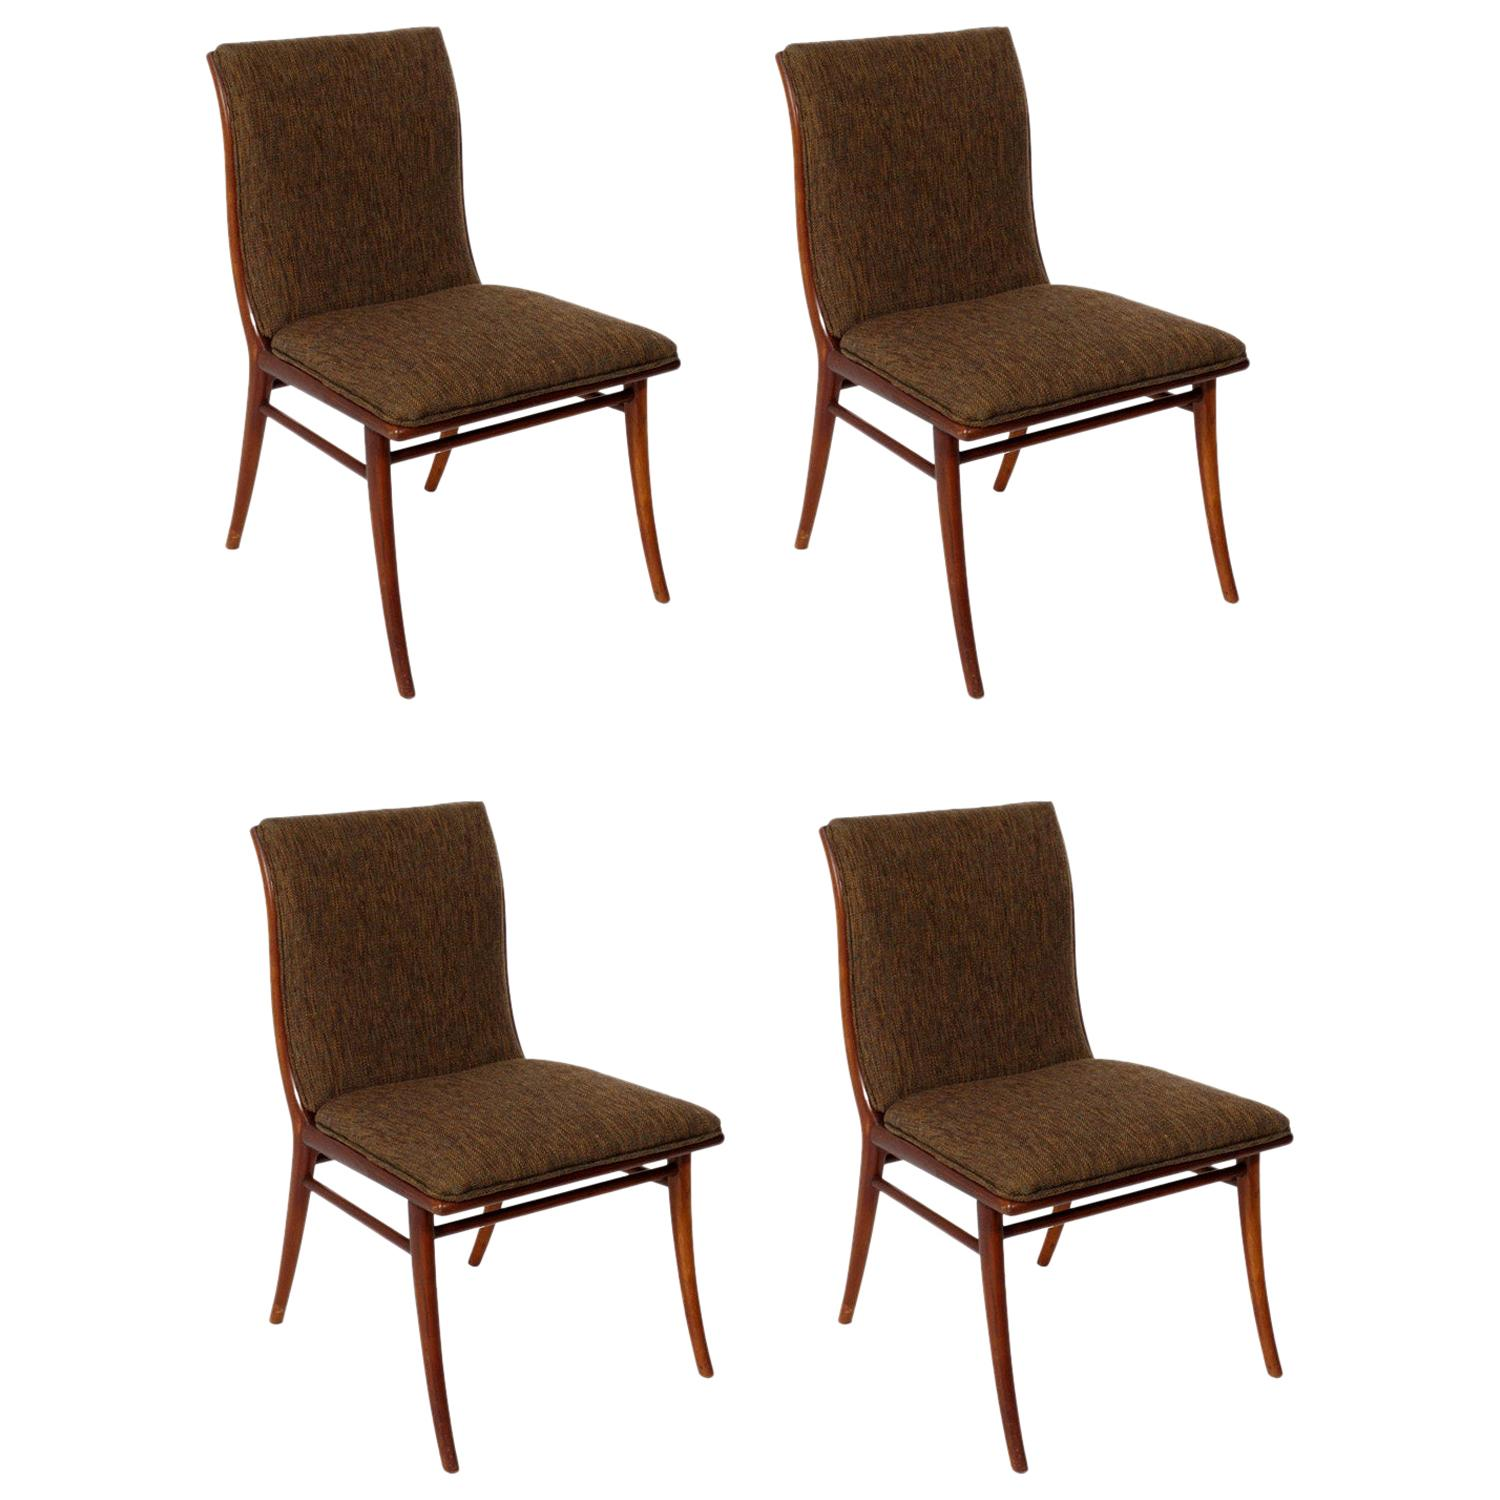 T.H. Robsjohn Gibbings Dining Chairs